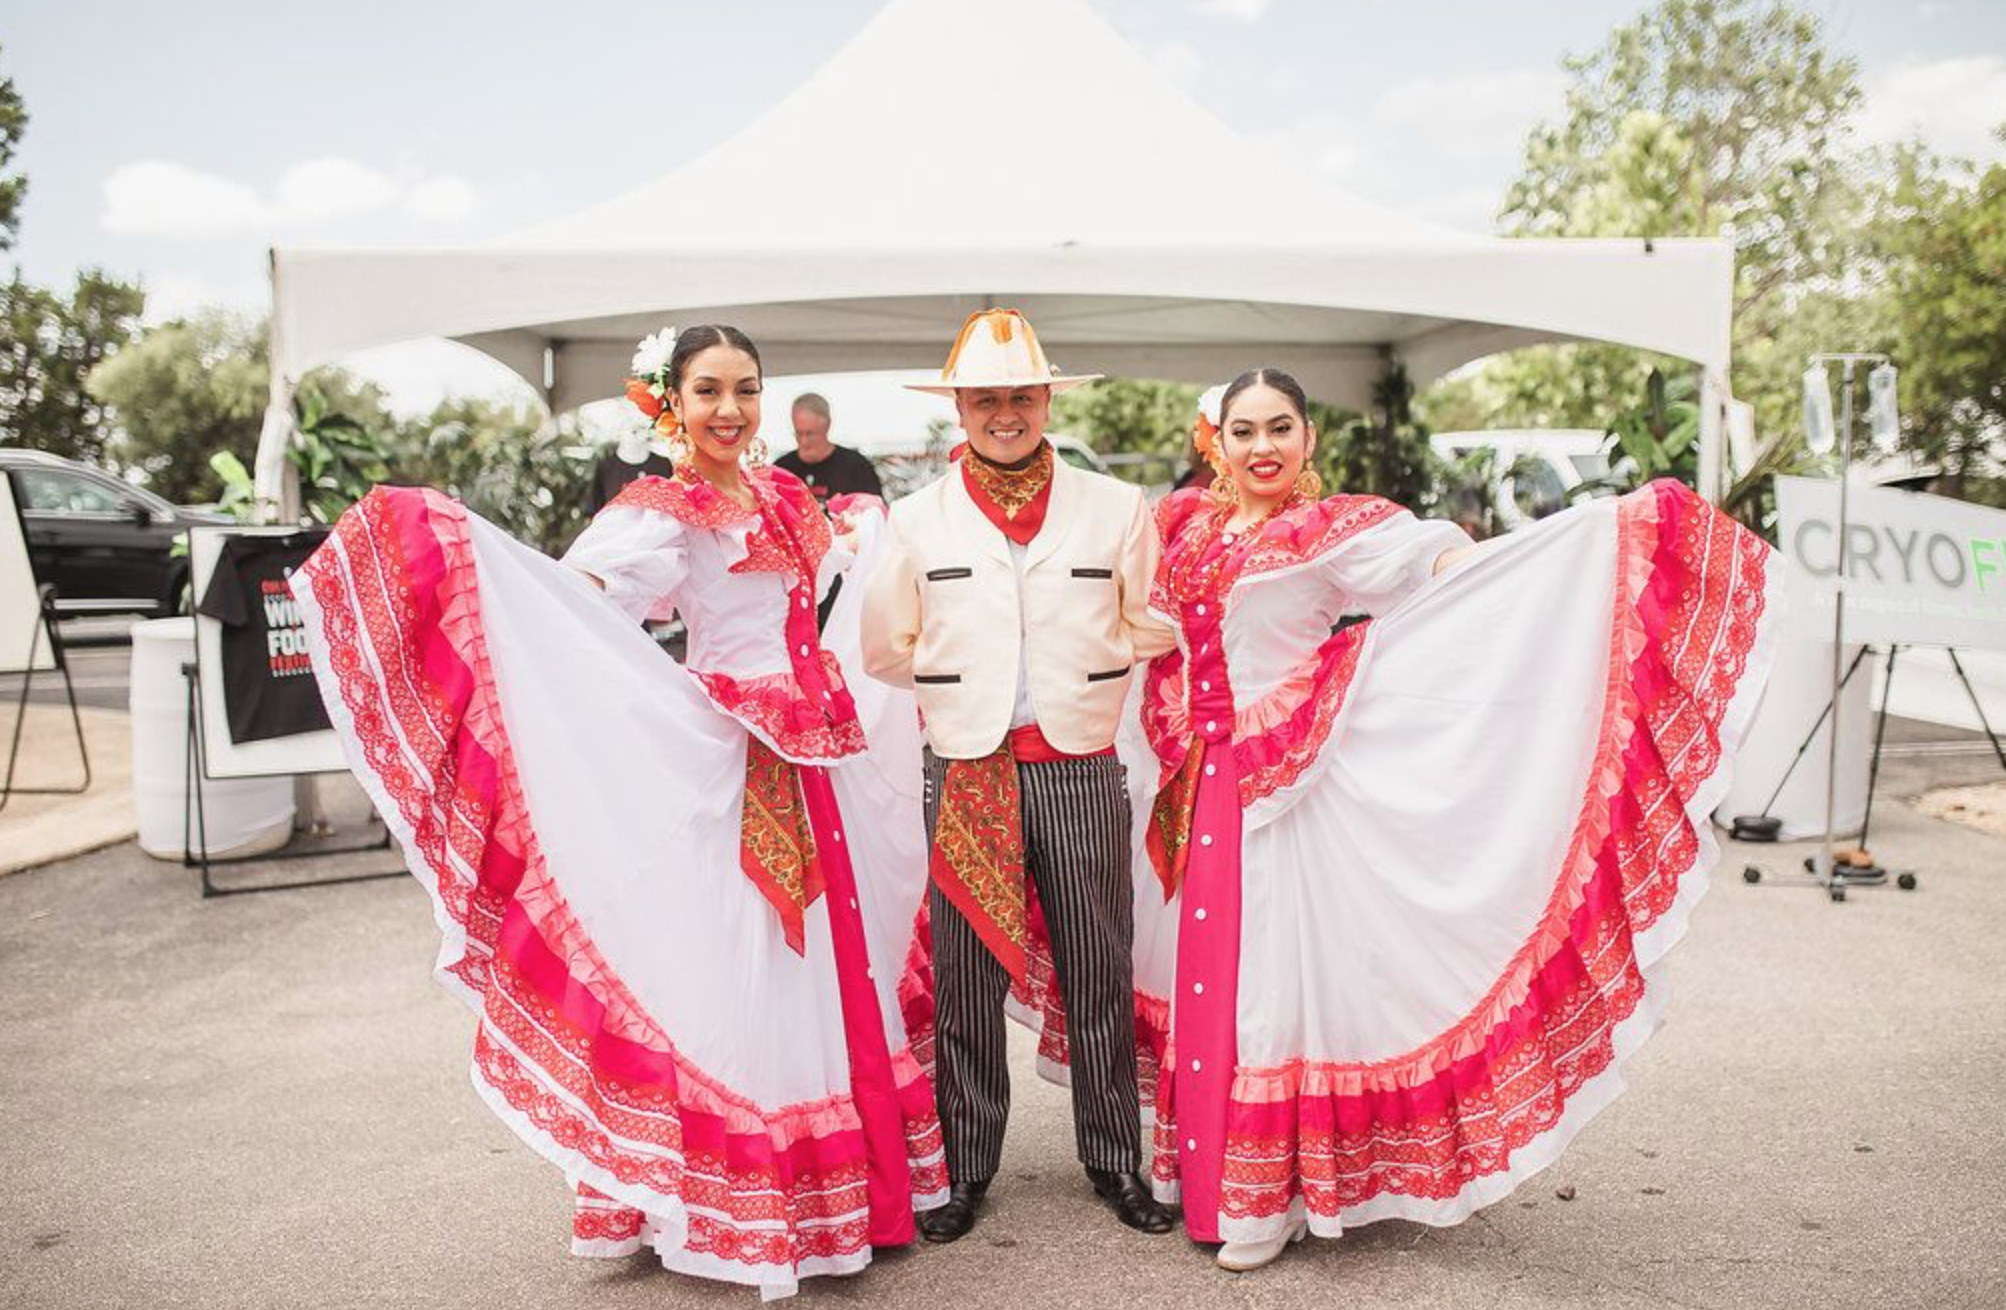 Arte Agave La Cantera Resort & Spa - San Antonio Grand Ballroom 7:00 PM to 10:00 PM | $75 General Admission/$100 At the Door | $125 VIP (Advance Purchase Only, Limited Availability)  Tequila, Tequila, Tequila, amazing food and ART! THAT is the theme of this over the top nod to our neighbors. We're celebrating unique and fine agave spirits + arts + entertainment inspired by the richness of Latino culture. You don't want to miss this very spirited event!